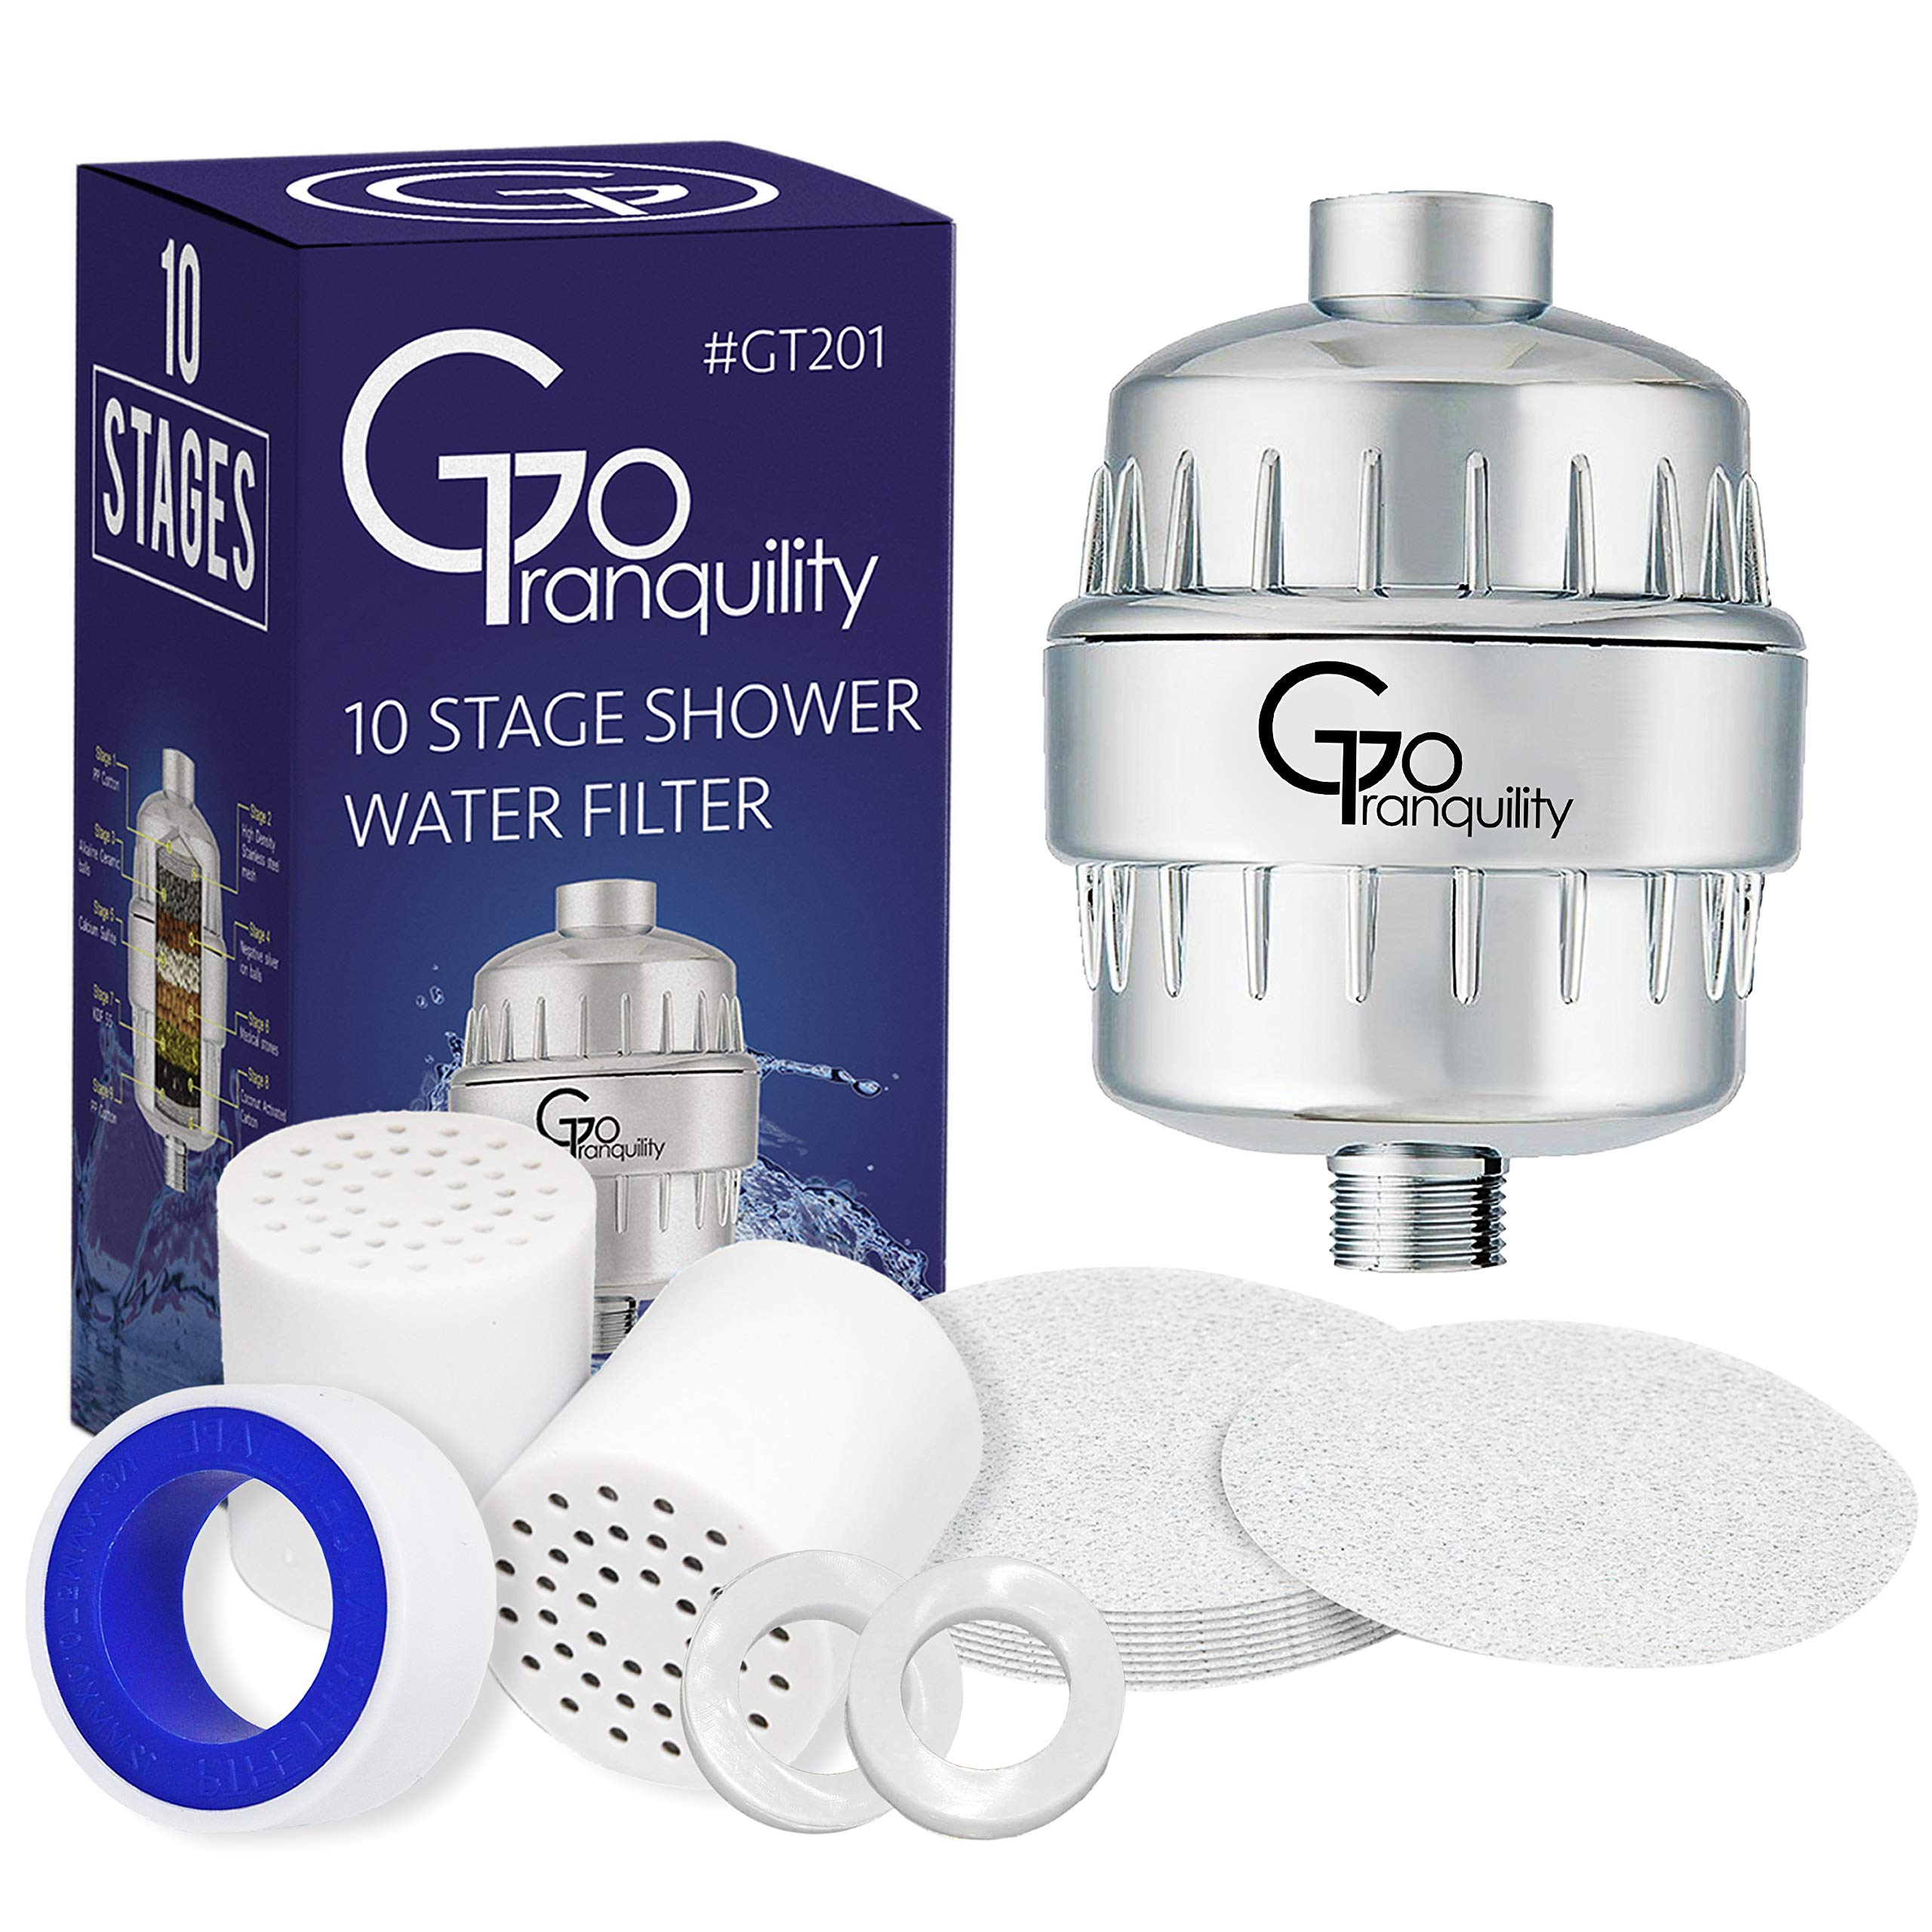 Shower Head Chlorine Filter & Hard Water Softener With Replacement Cartridge Prevents Hair & Skin Dryness Universal Showerhead System by GoTranquility (Image #1)